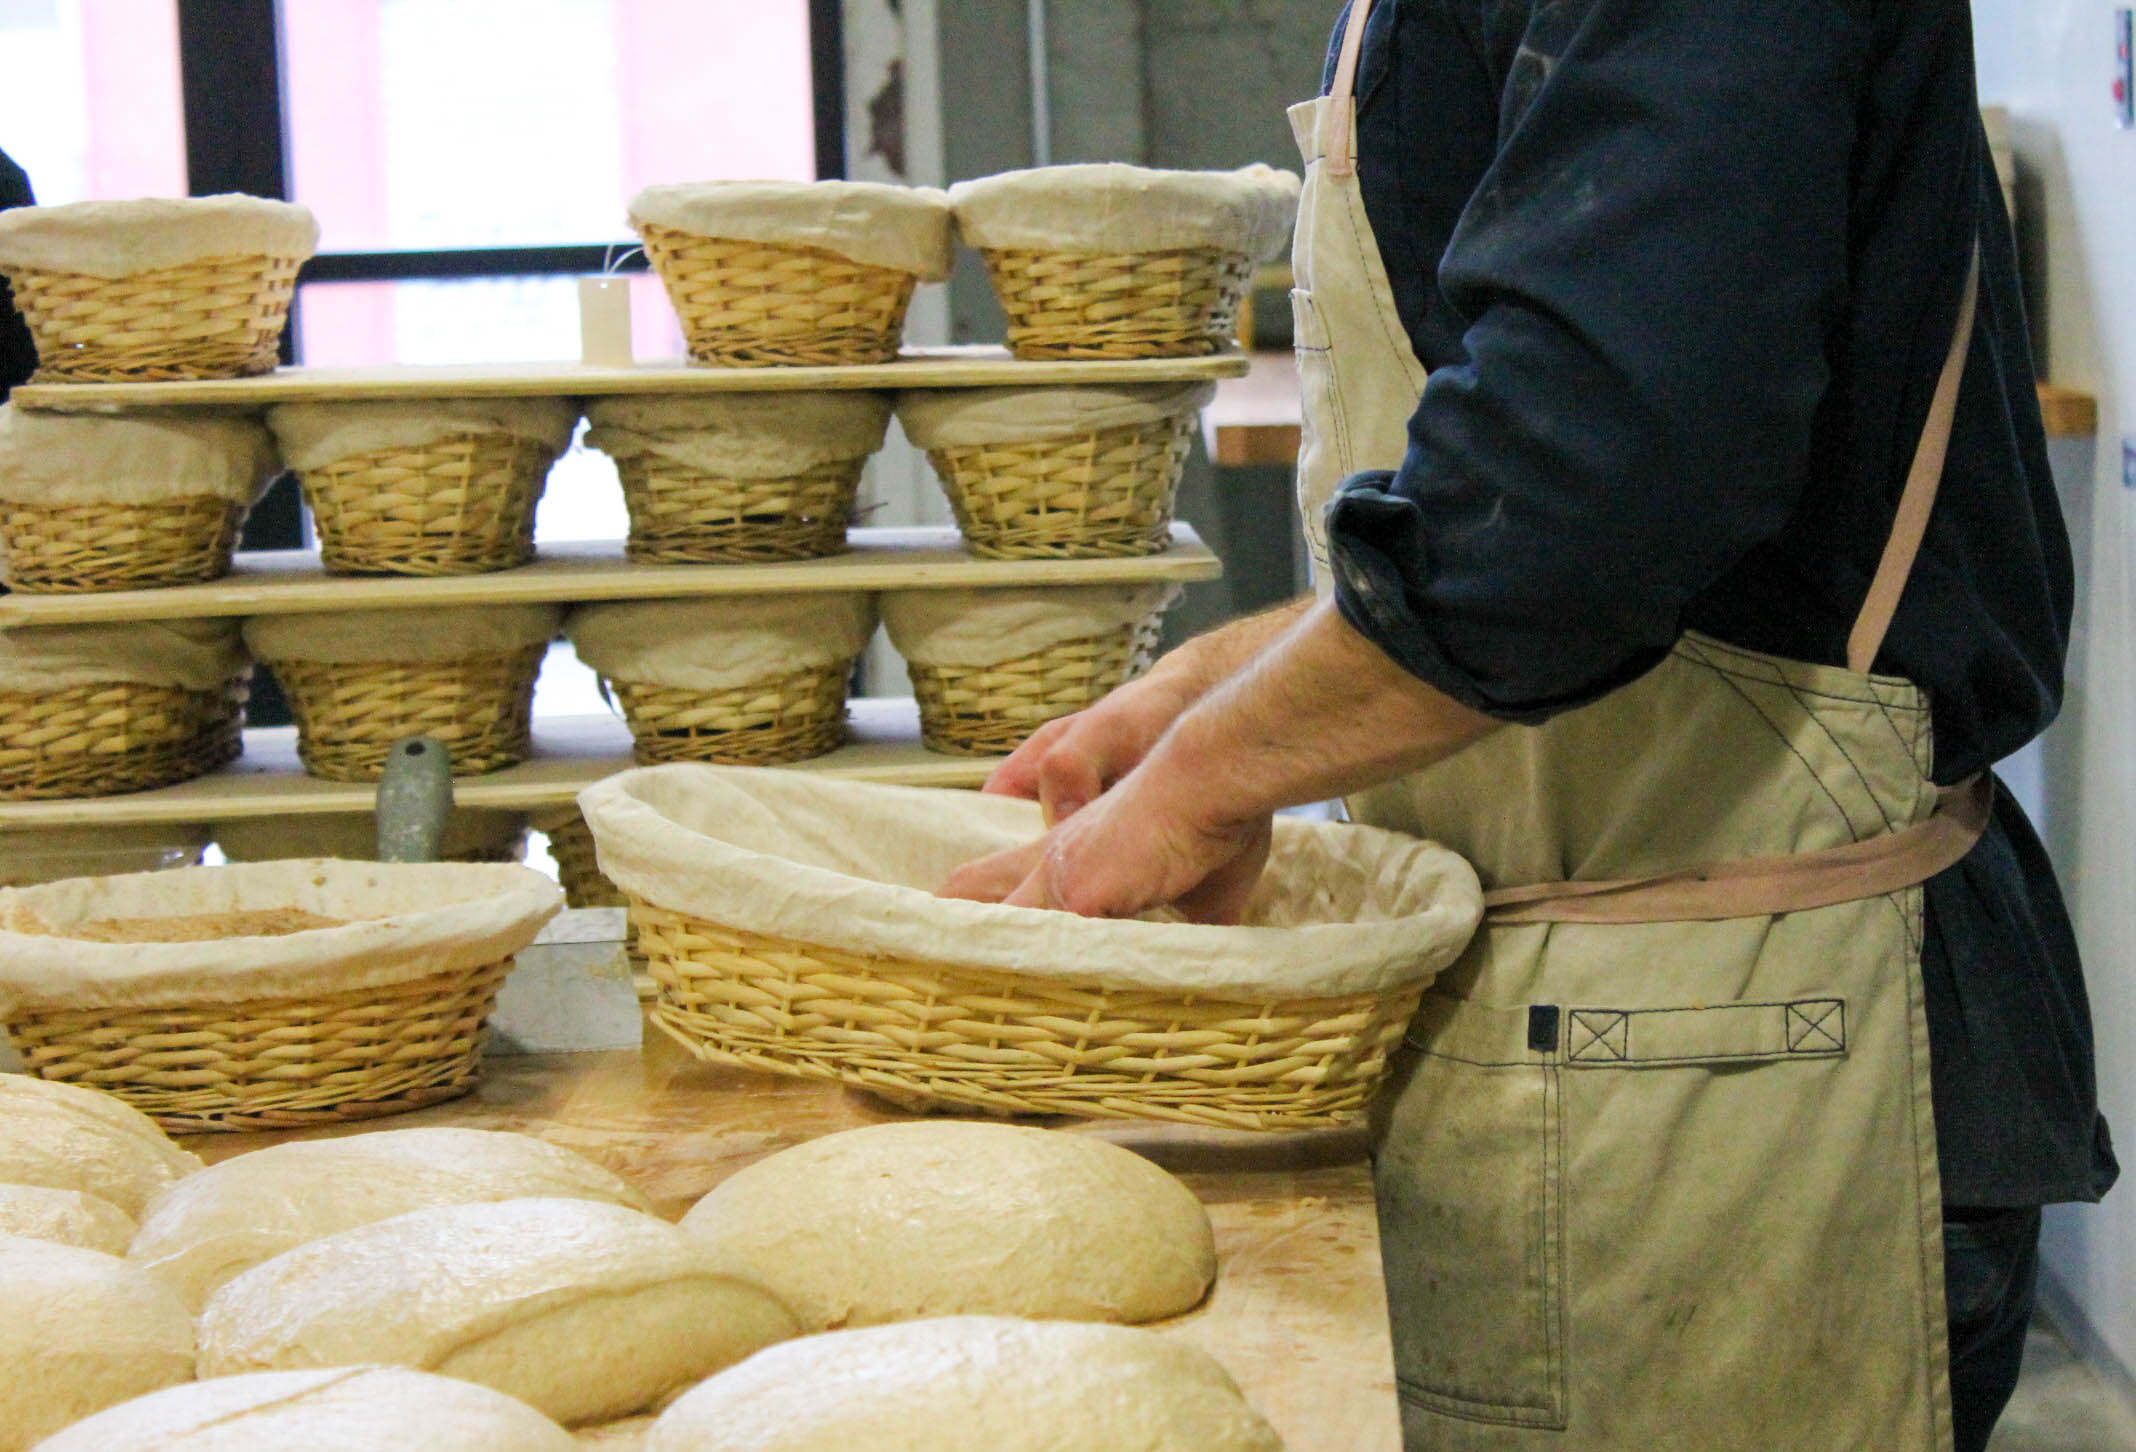 Flouring the proofing baskets.